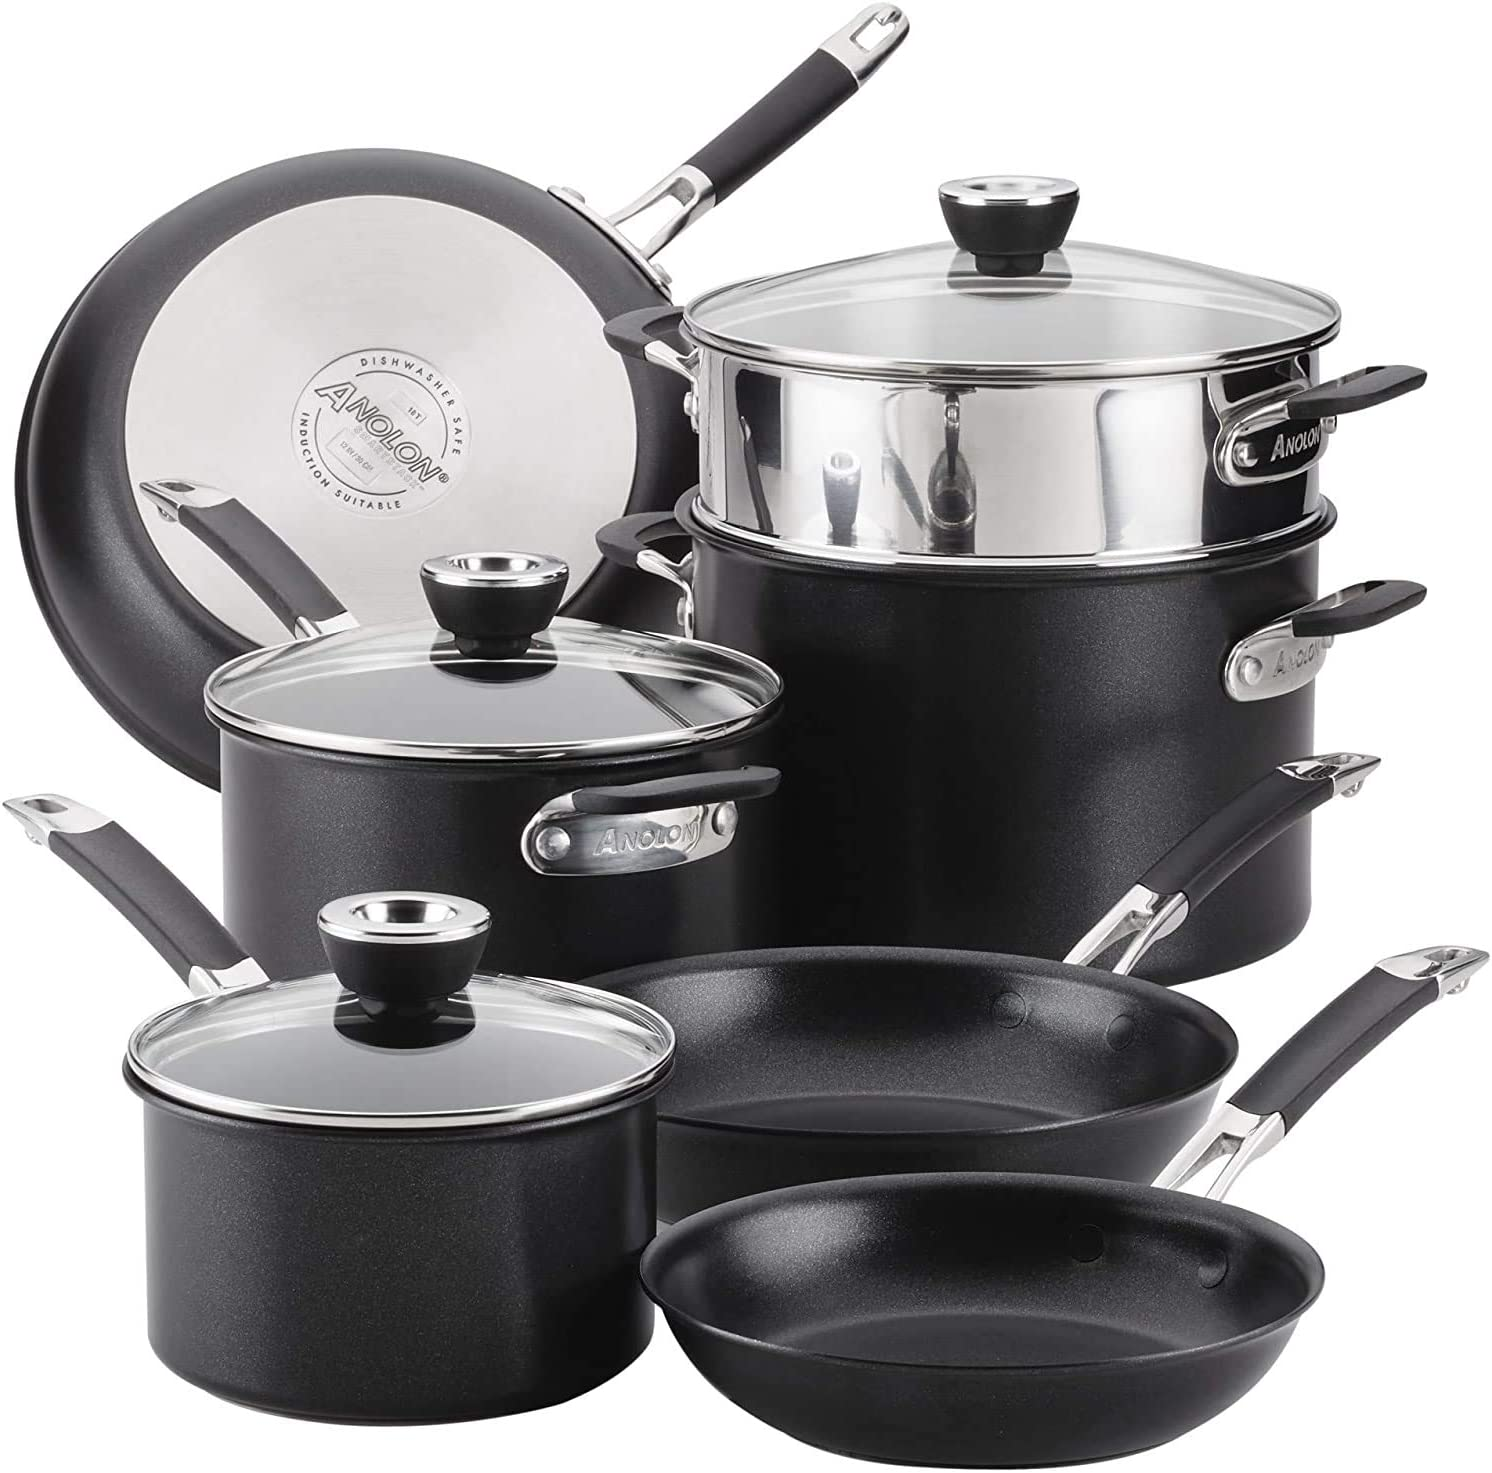 Anolon SmartStack 87537 Hard-Anodized Nesting and Ranking TOP6 Pots Set Large-scale sale Pans